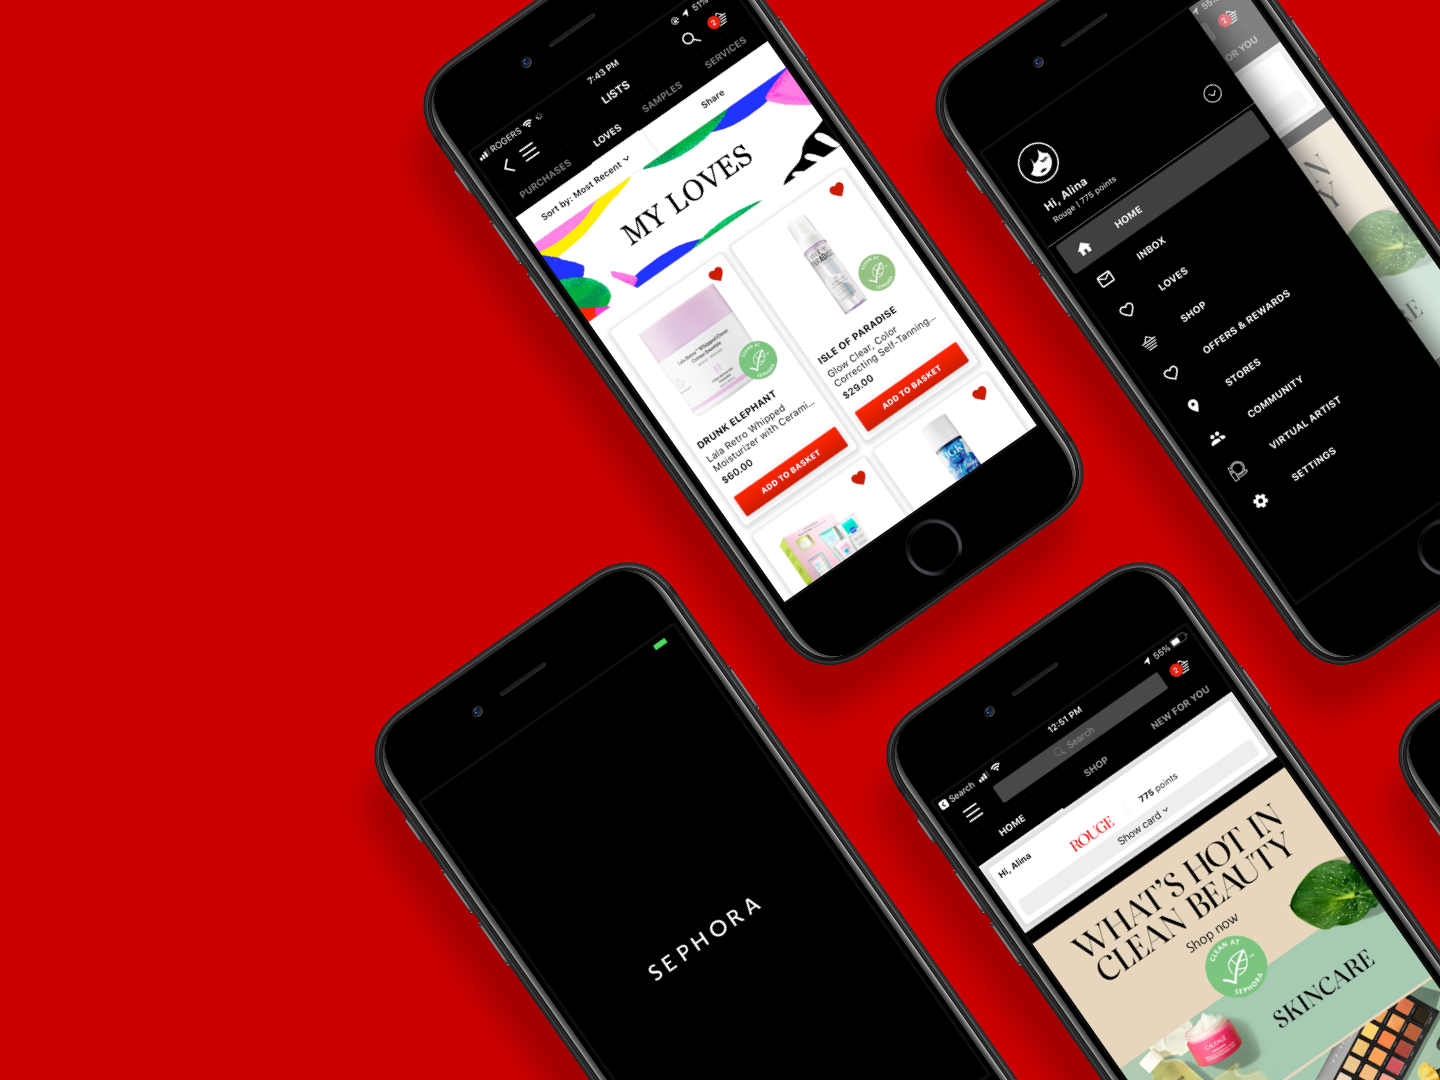 Sephora Redesign: Loves List and Navigation Drawer by Alina